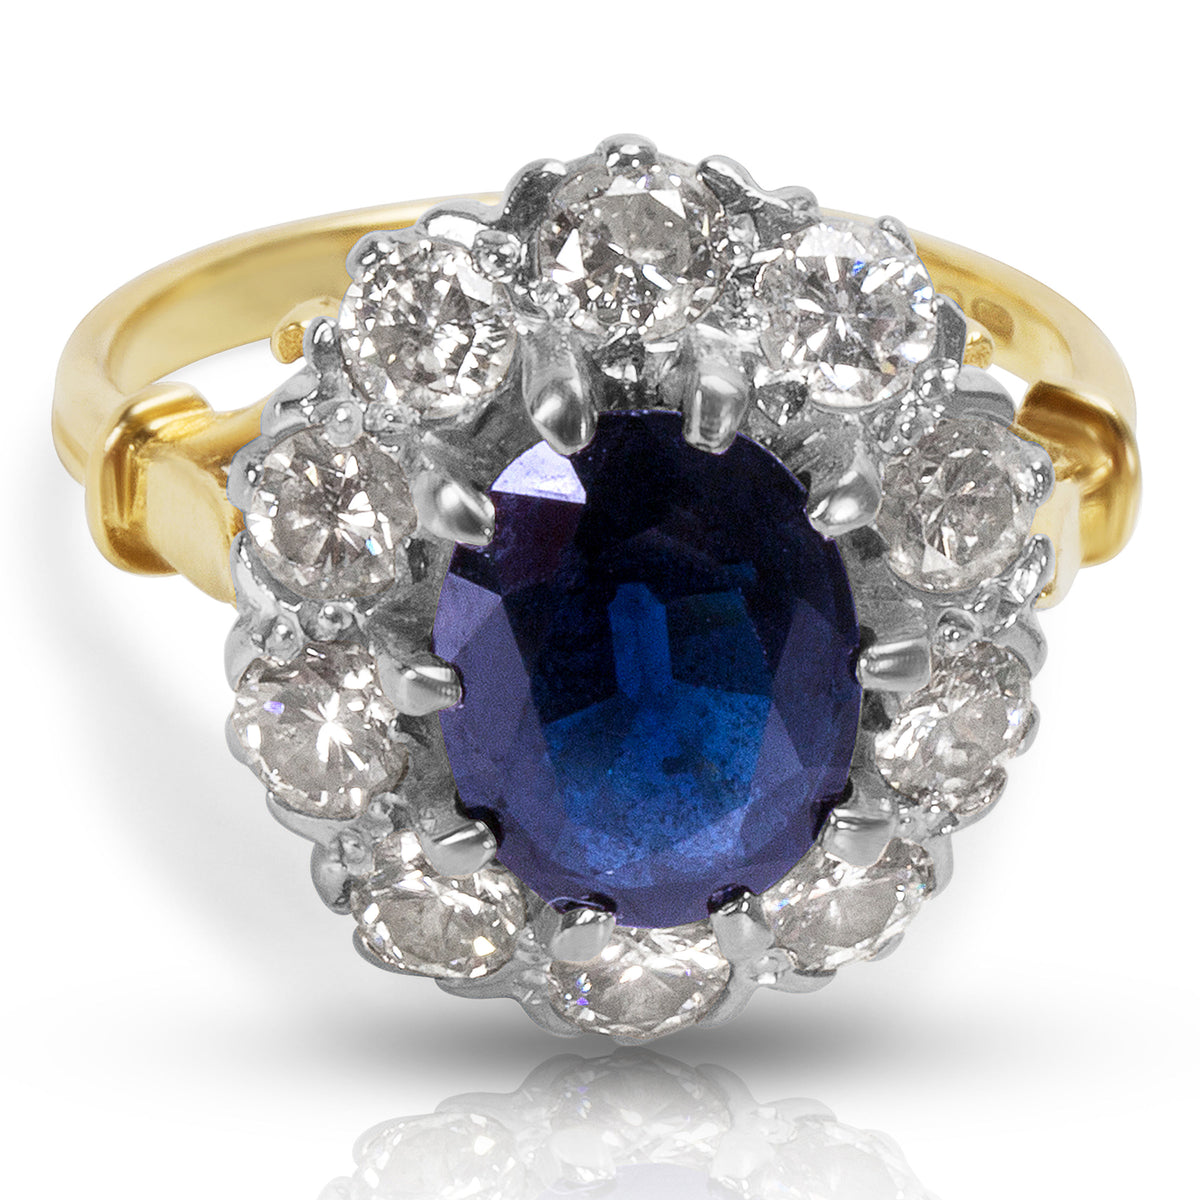 BRAND NEW Diamond & Sapphire Oval Fashion Ring in 18k Yellow Gold (1.25 CTW)